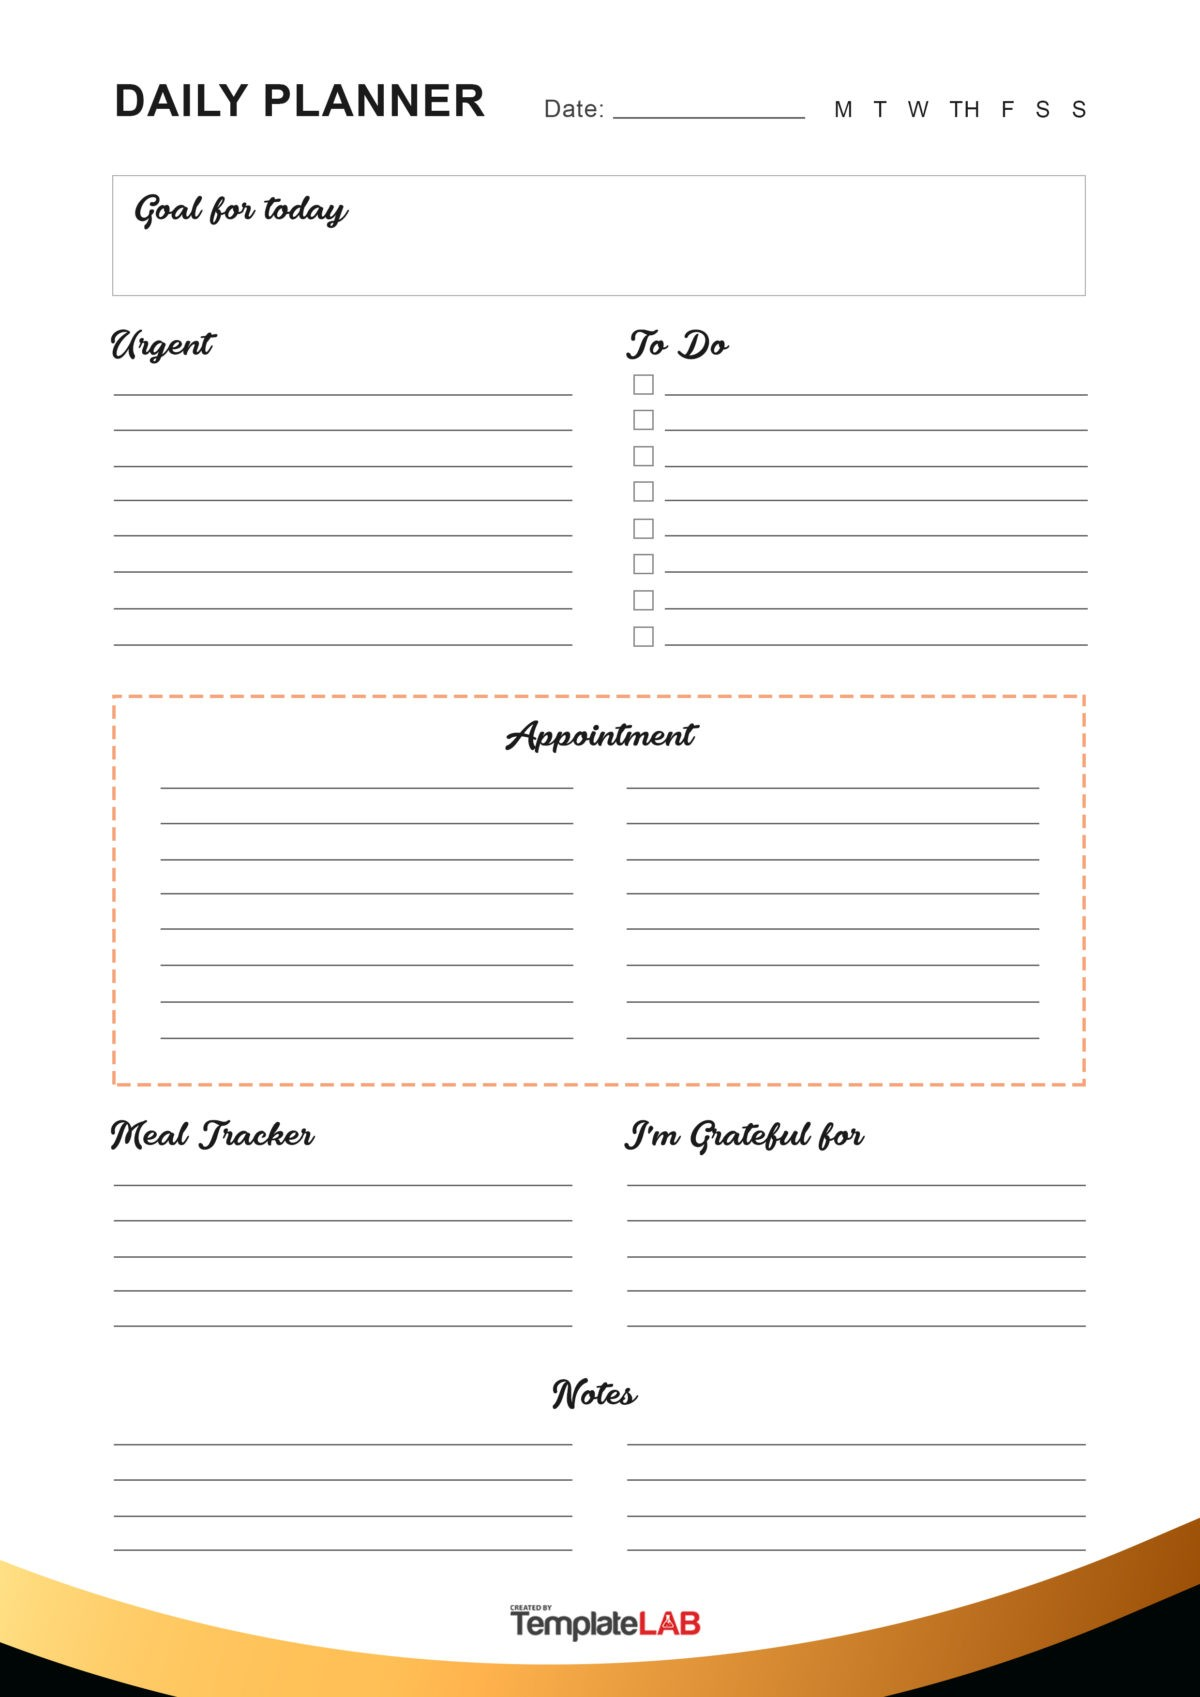 Free Daily Planner Template 13